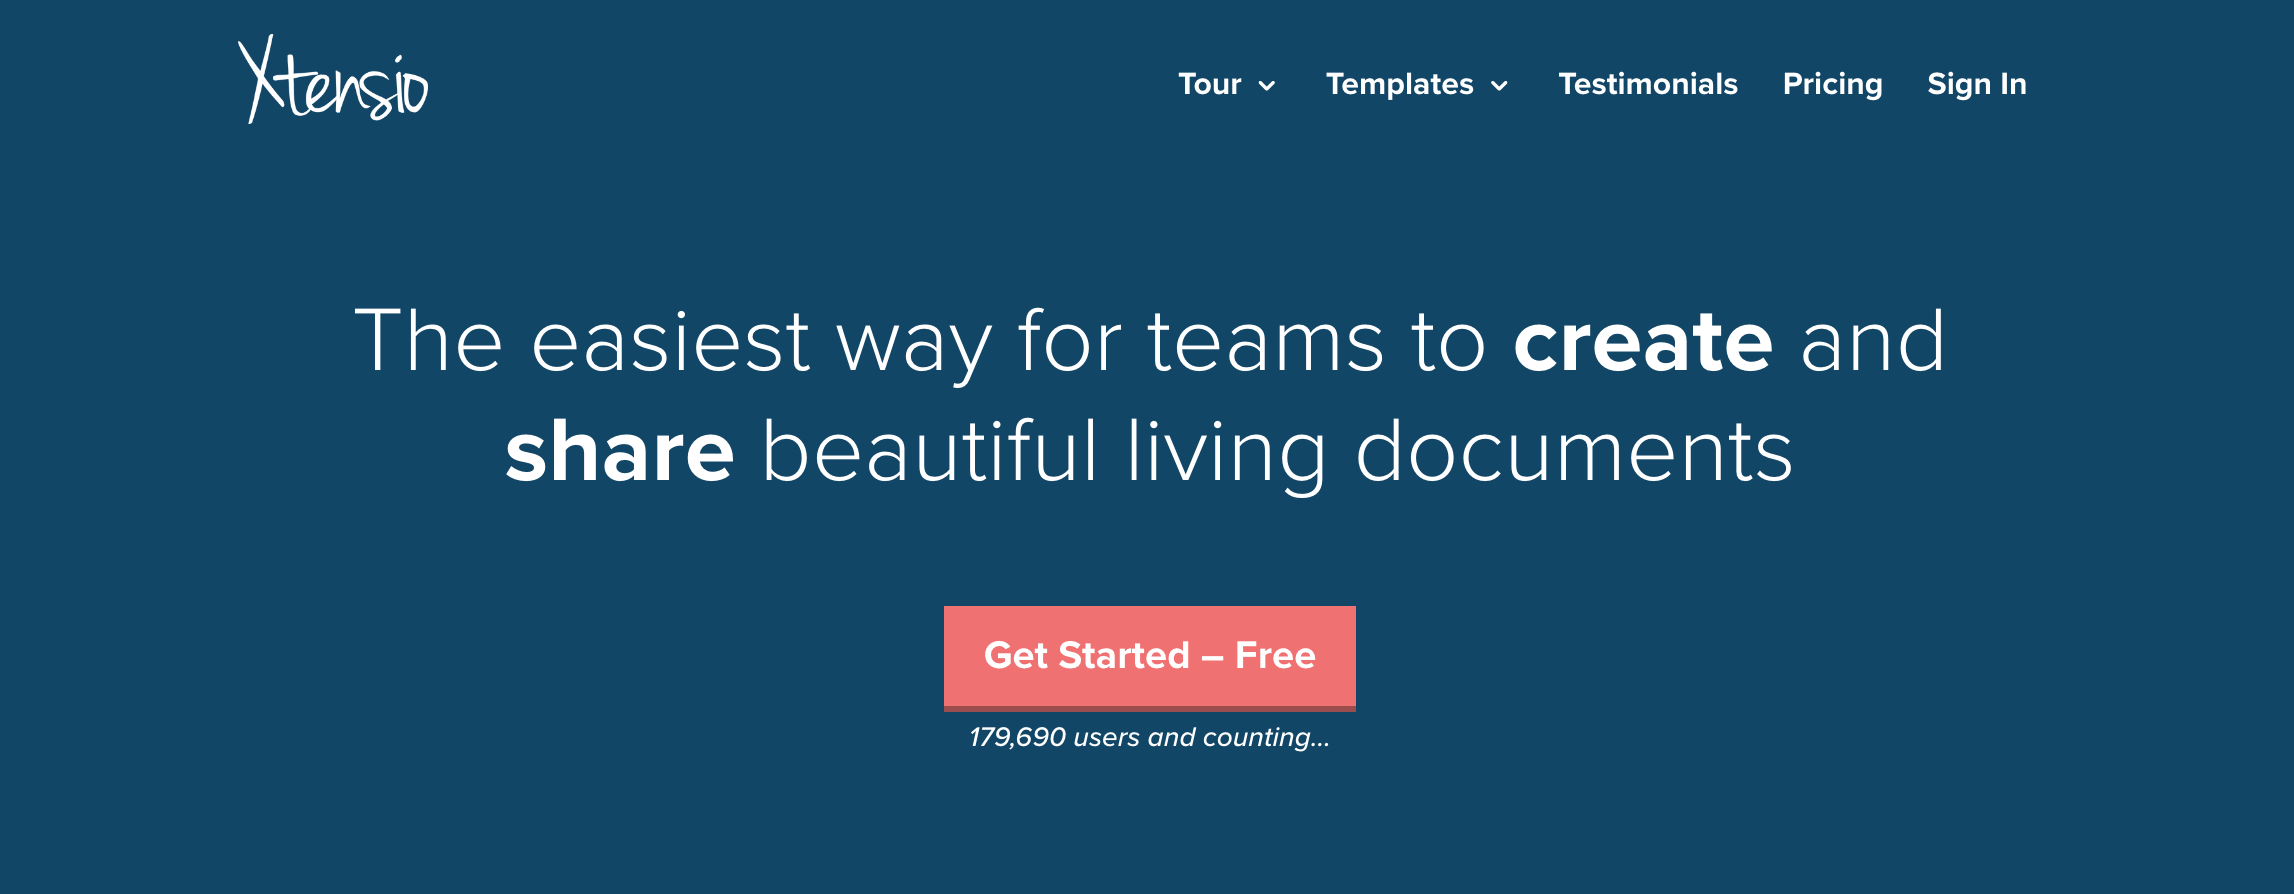 Xtensio website screenshot